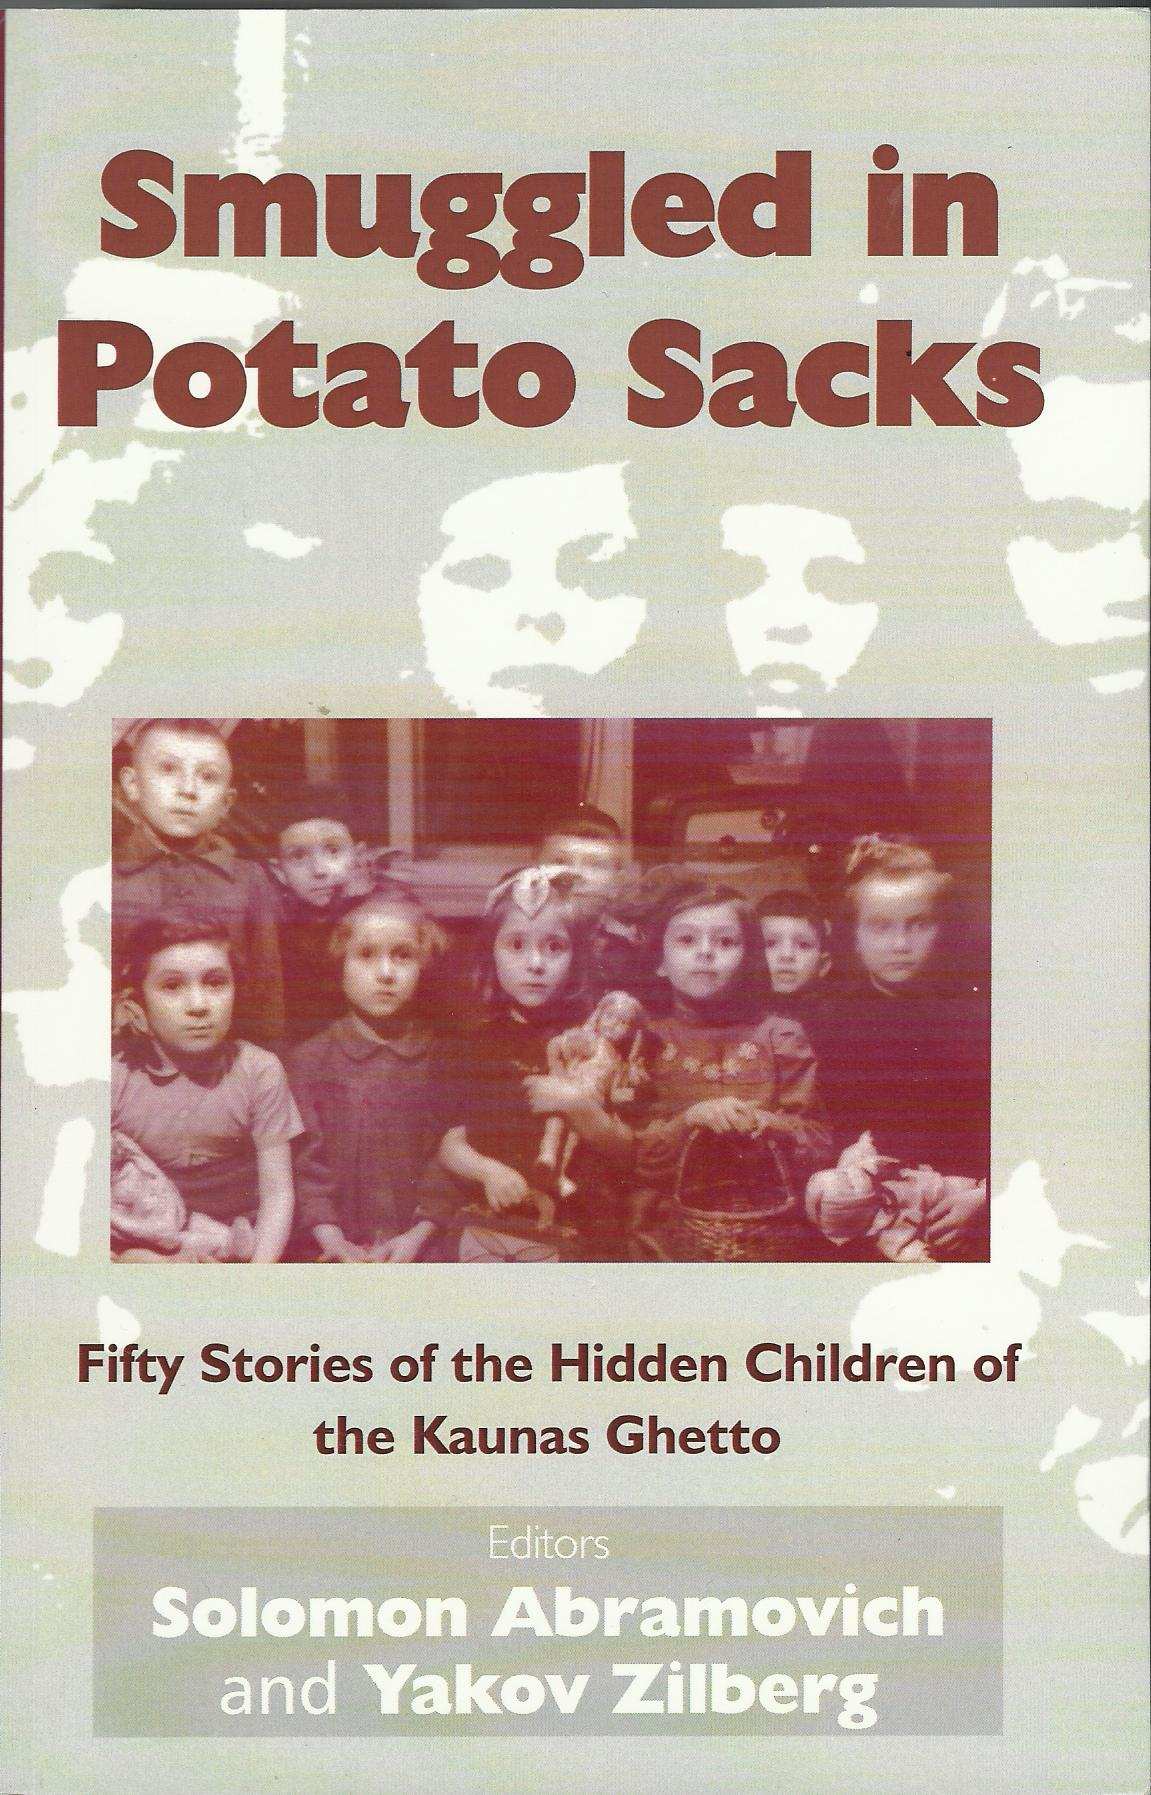 Cover of the book Smuggled in Potato Sacks